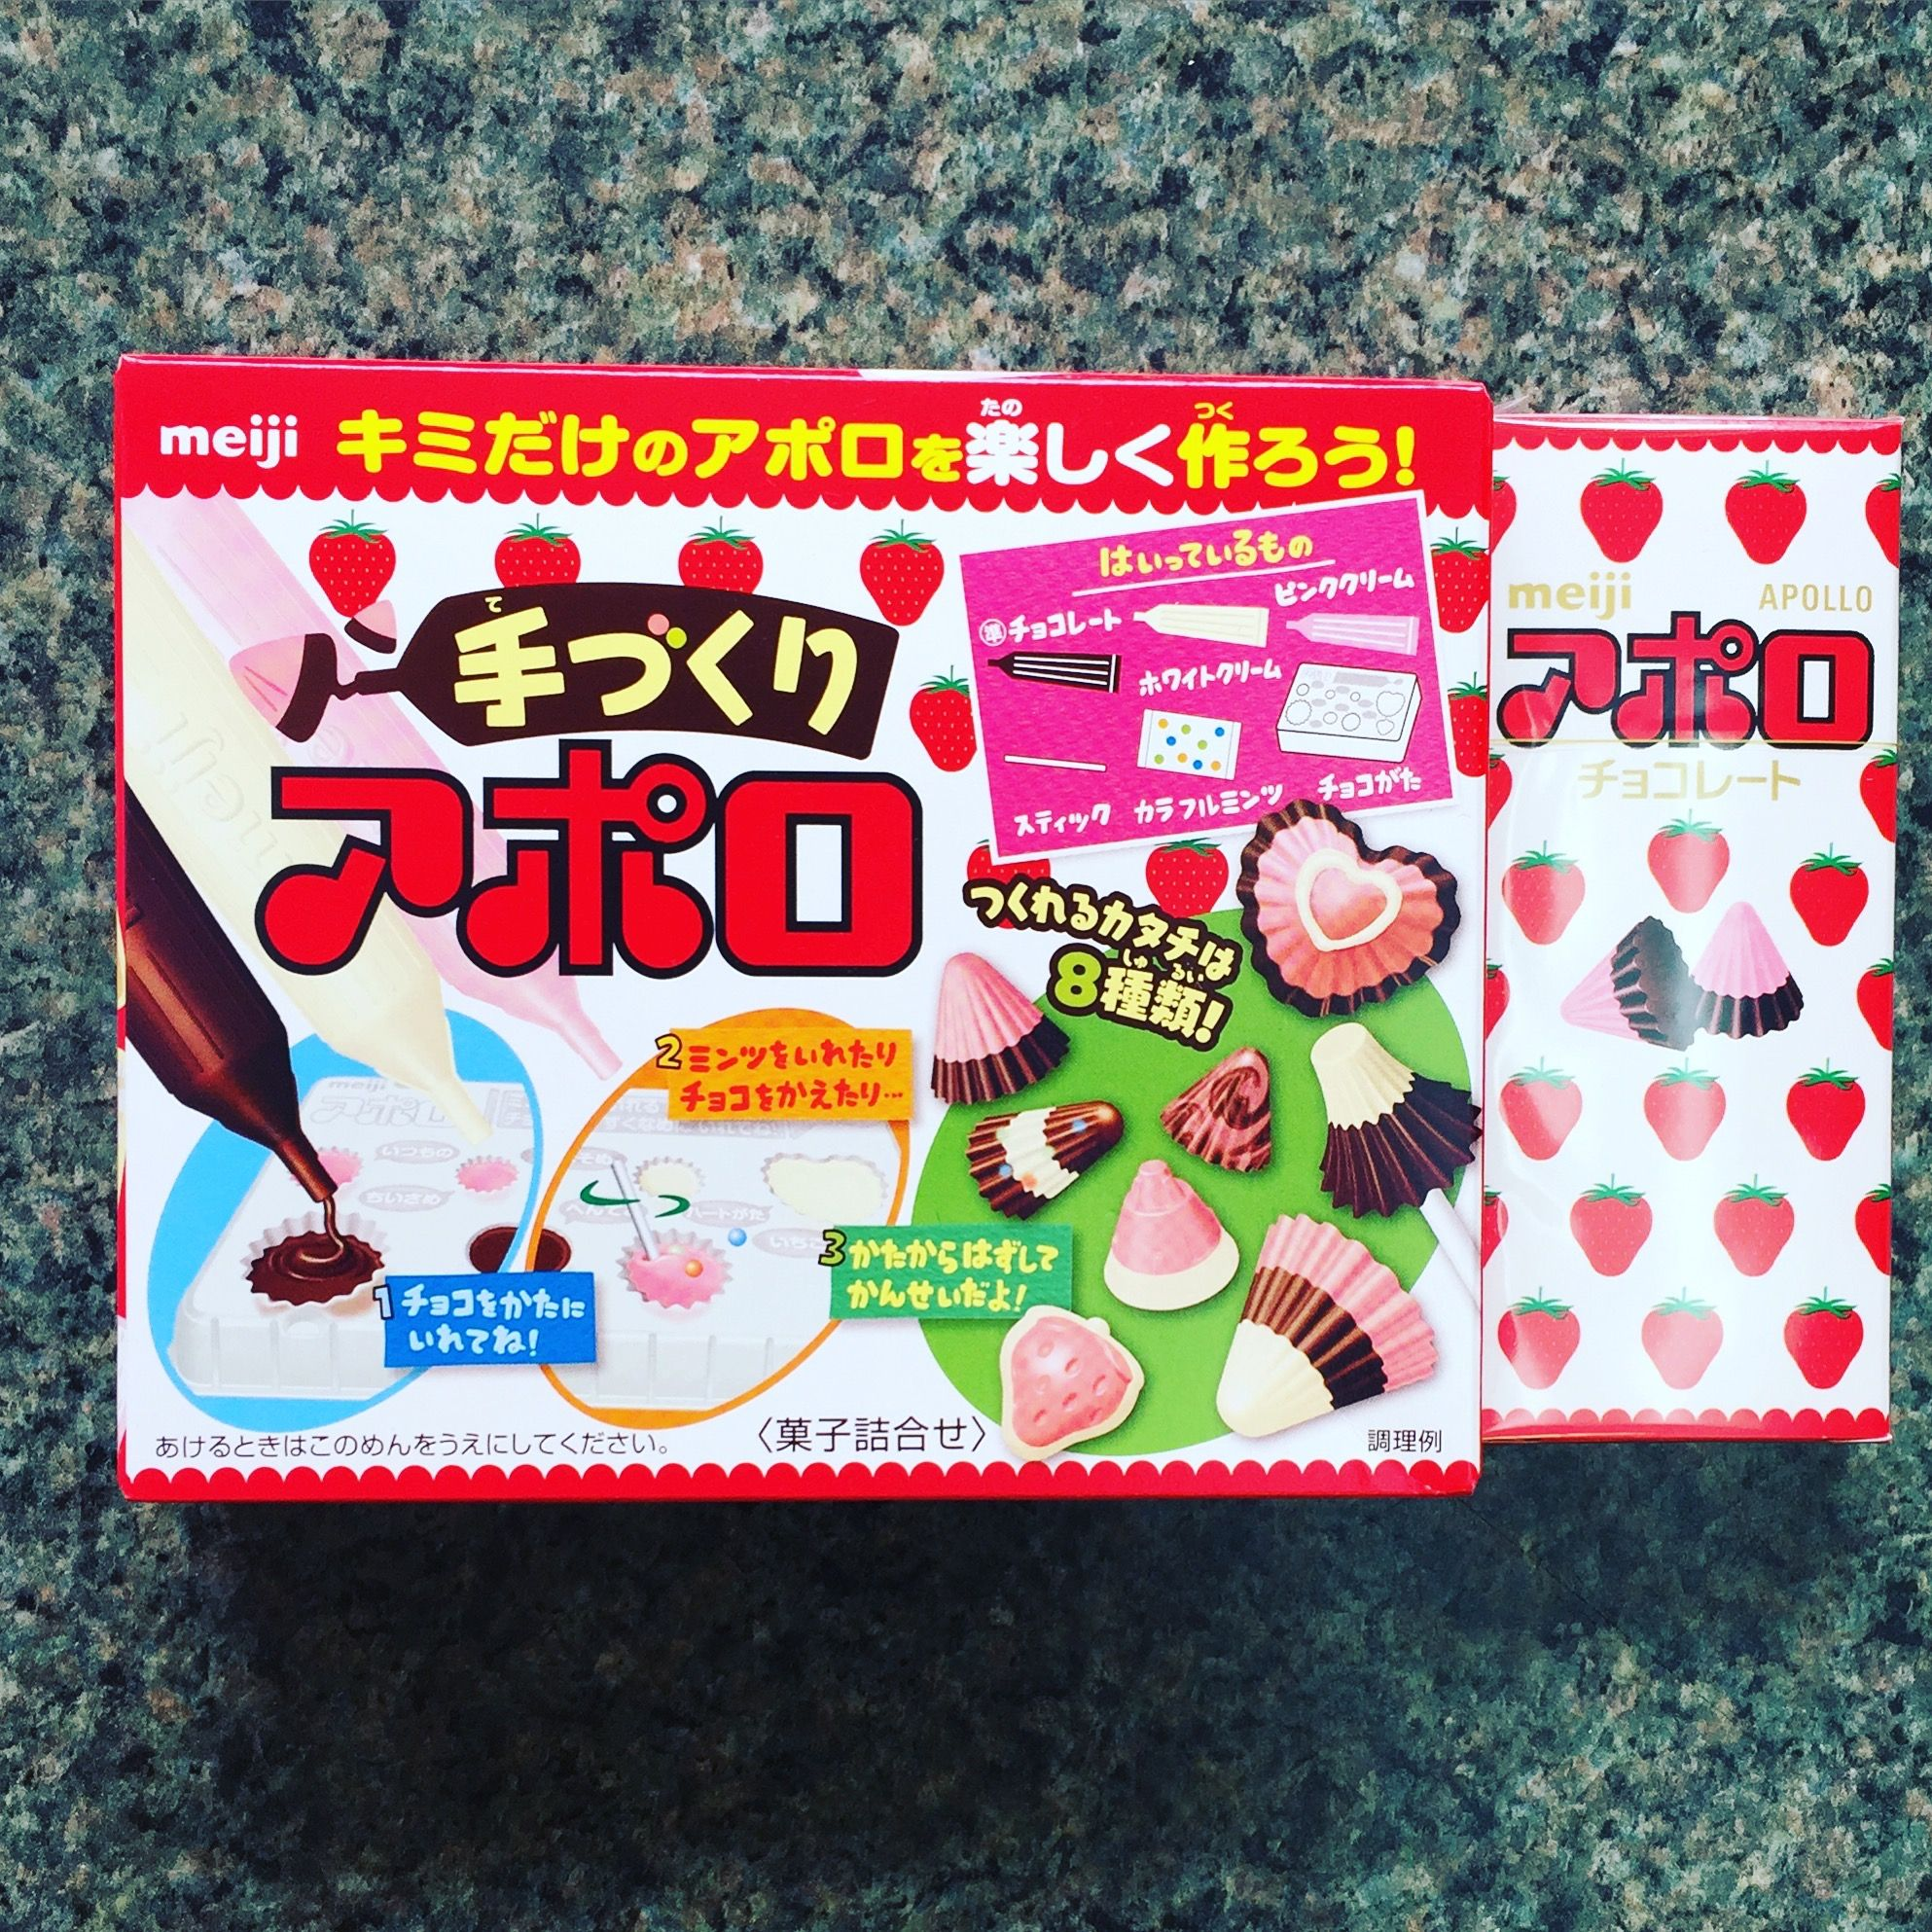 MEIJI APOLLO - DIY CANDY KIT. Apollo a cone shaped strawberry chocolates from Meiji.  You first heat up the tubes filled with liquid chocolate by putting them in hot water. Once soft you fill up the different holes on the plastic trays with either chocolate, strawberry chocolate and white chocolate. The different stamps on the mould tray are of many different sizes, letting you make apollo as big or small or a unique shape!! Omoshiroiyo!! #jmart #japanesegrocery #757 #vabeach